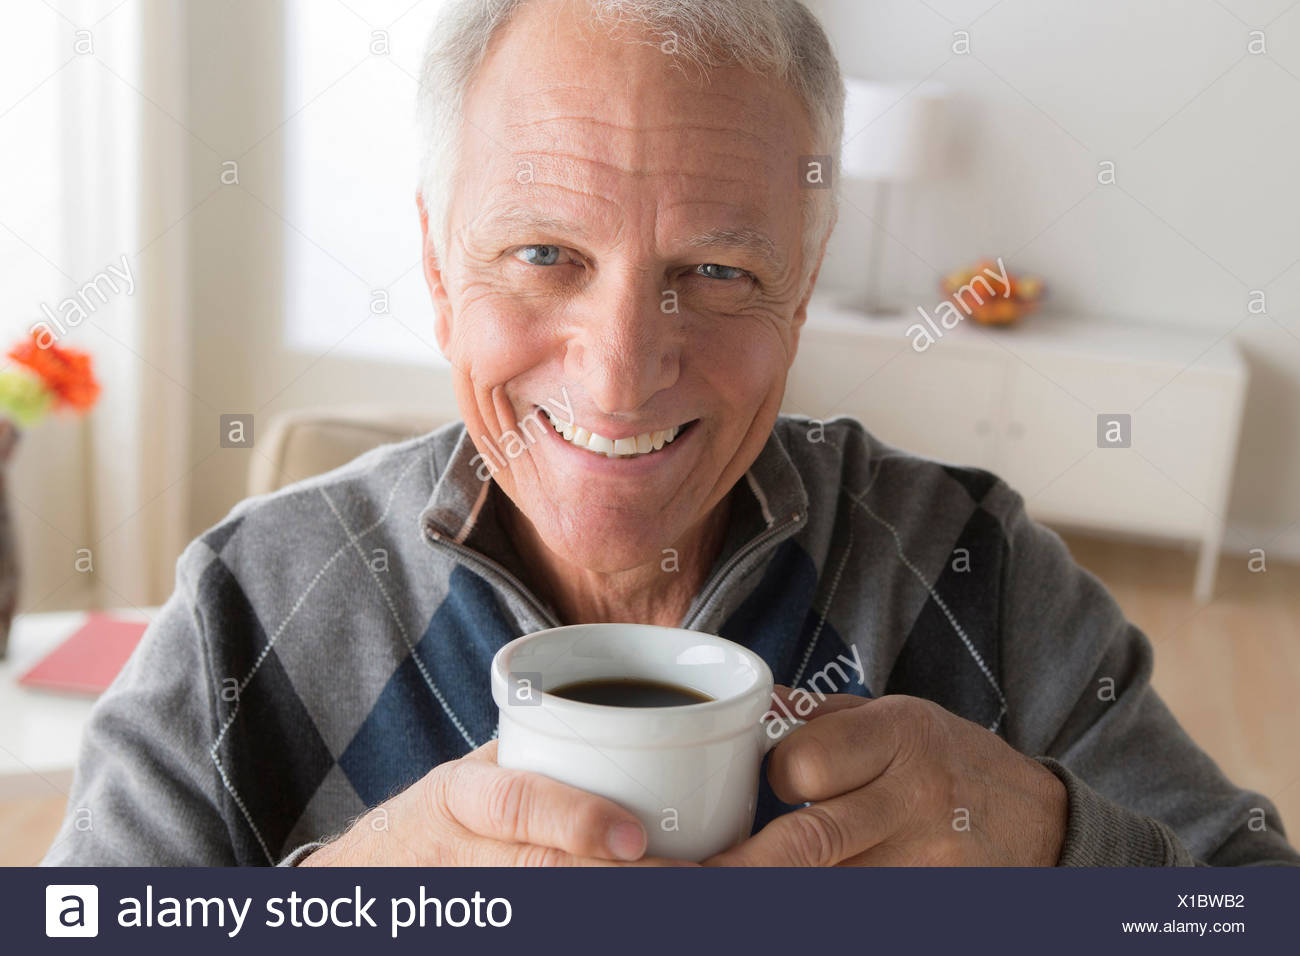 Senior man with cup of coffee - Stock Image